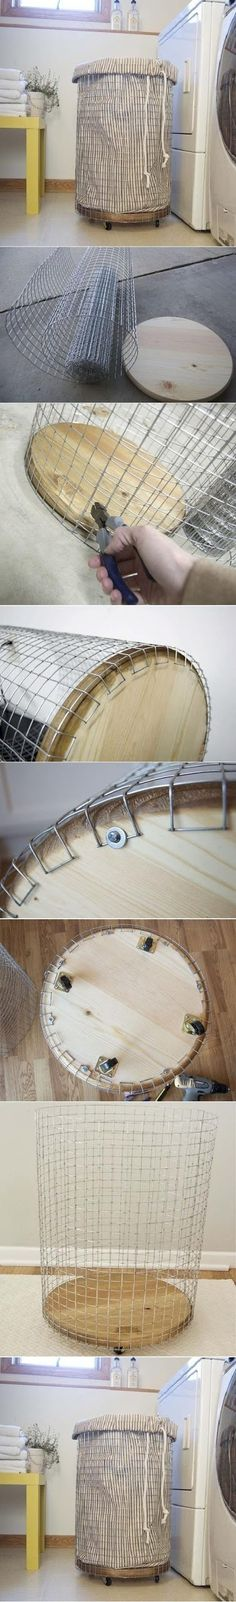 DIY | laundry basket